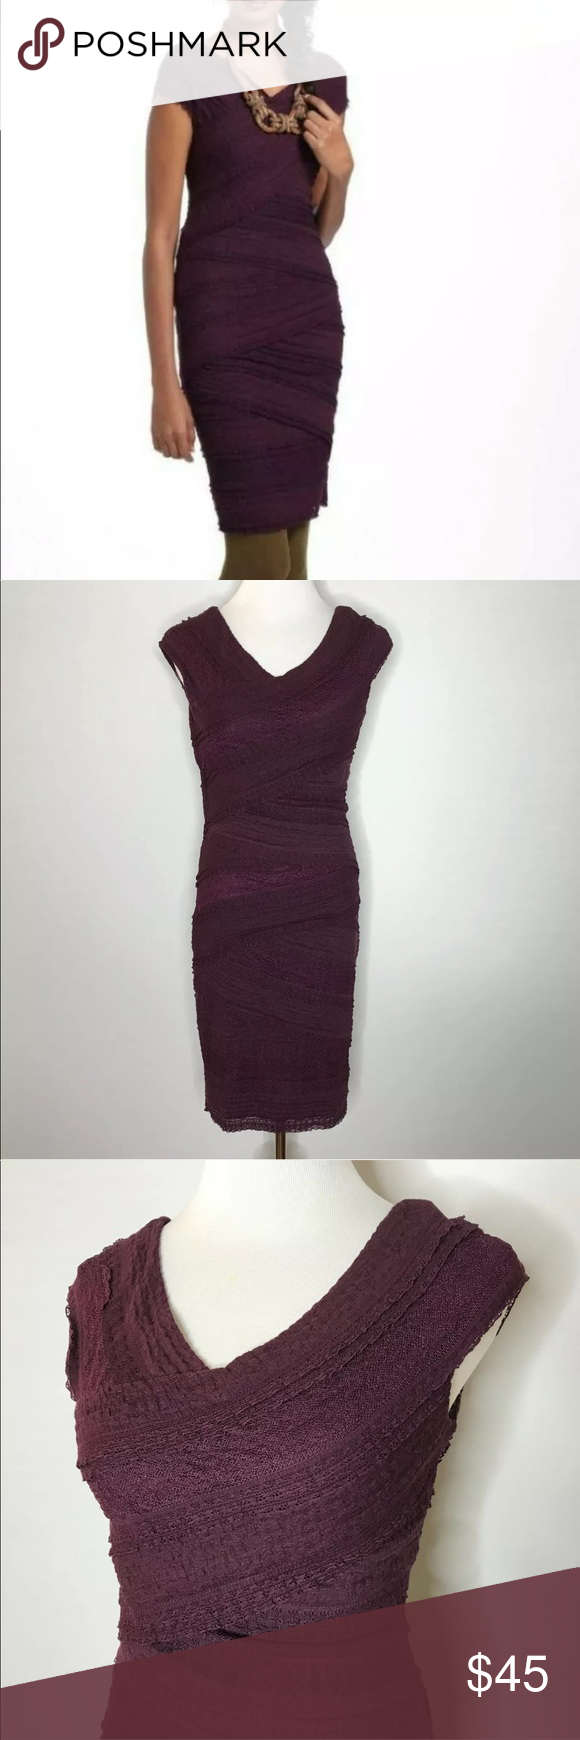 Nwt Bailey 44 Lace Tiered Plum Dress New With Tags